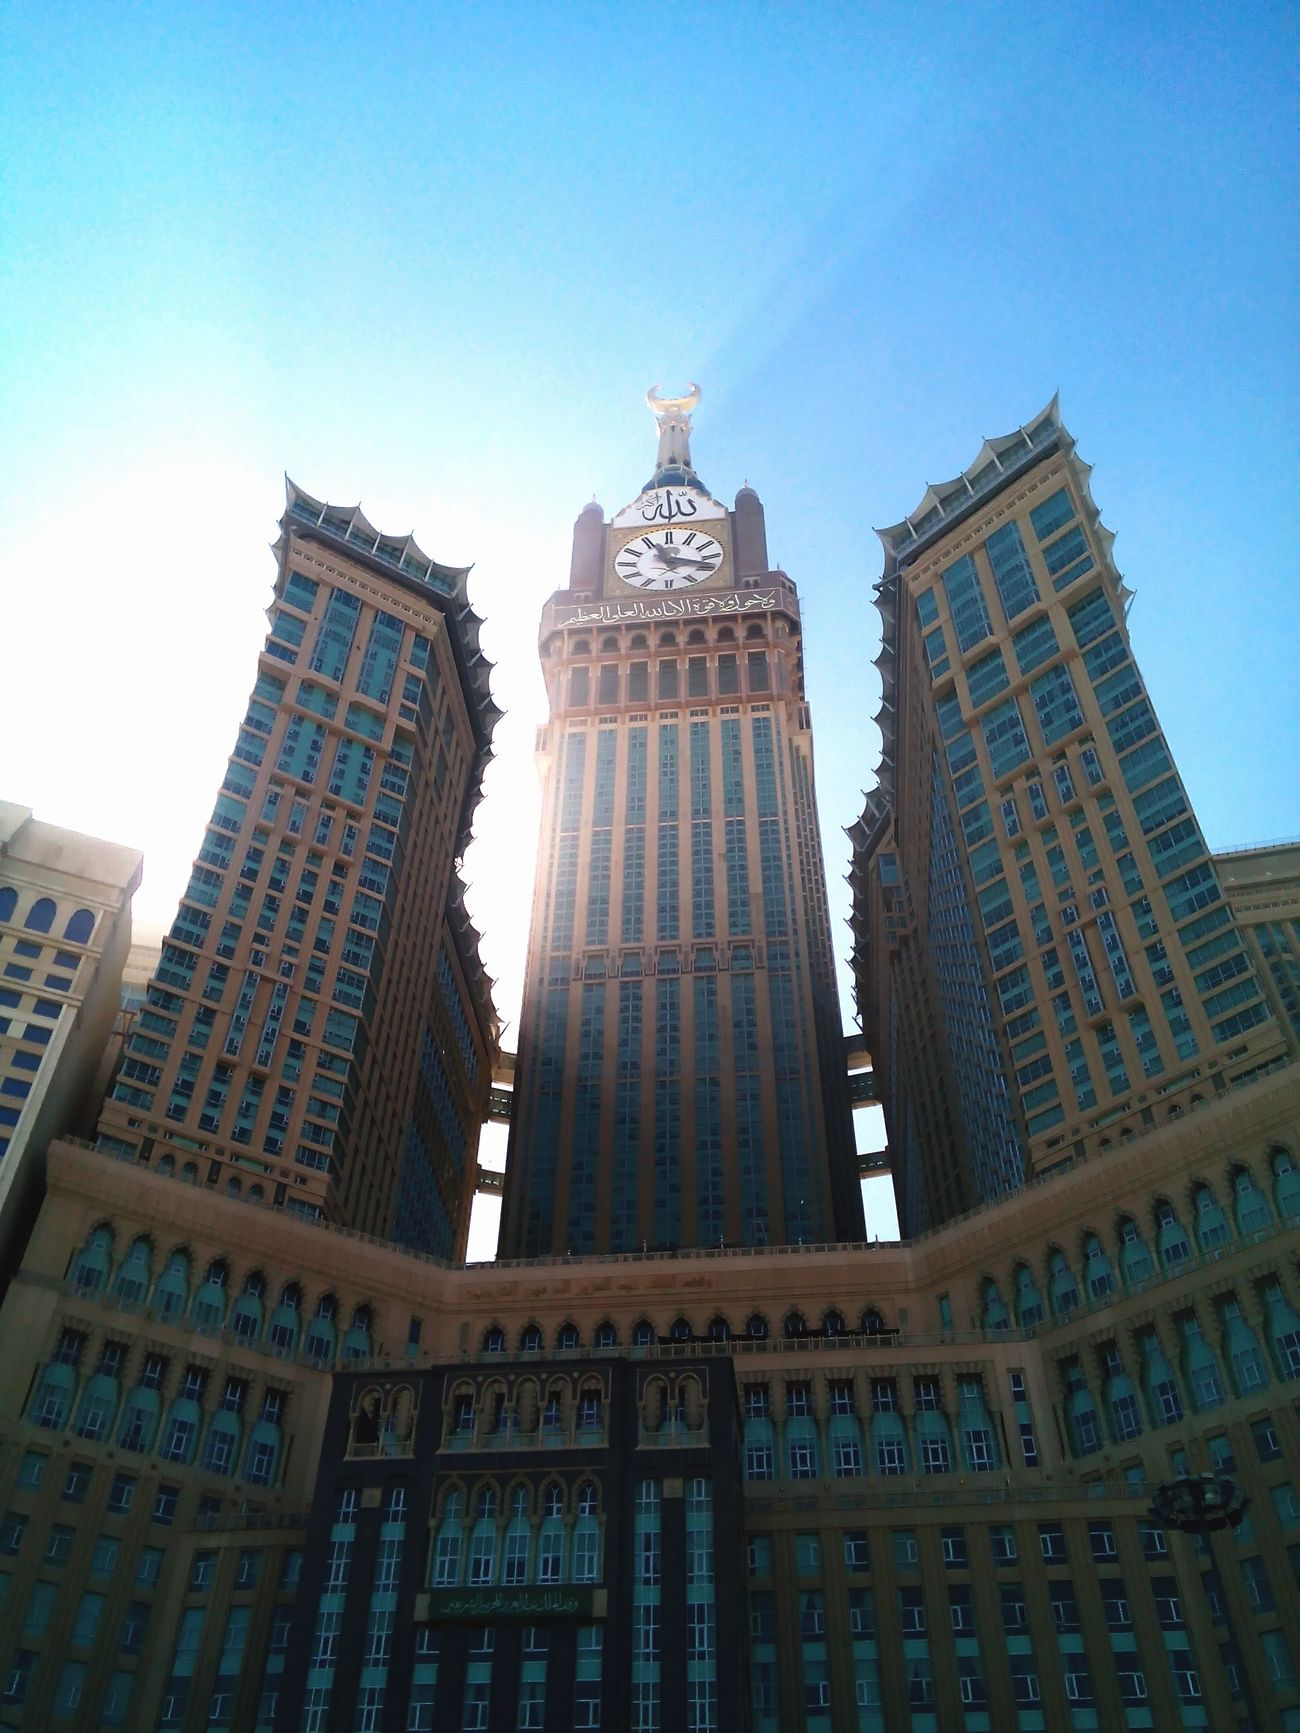 Zam zam tower.